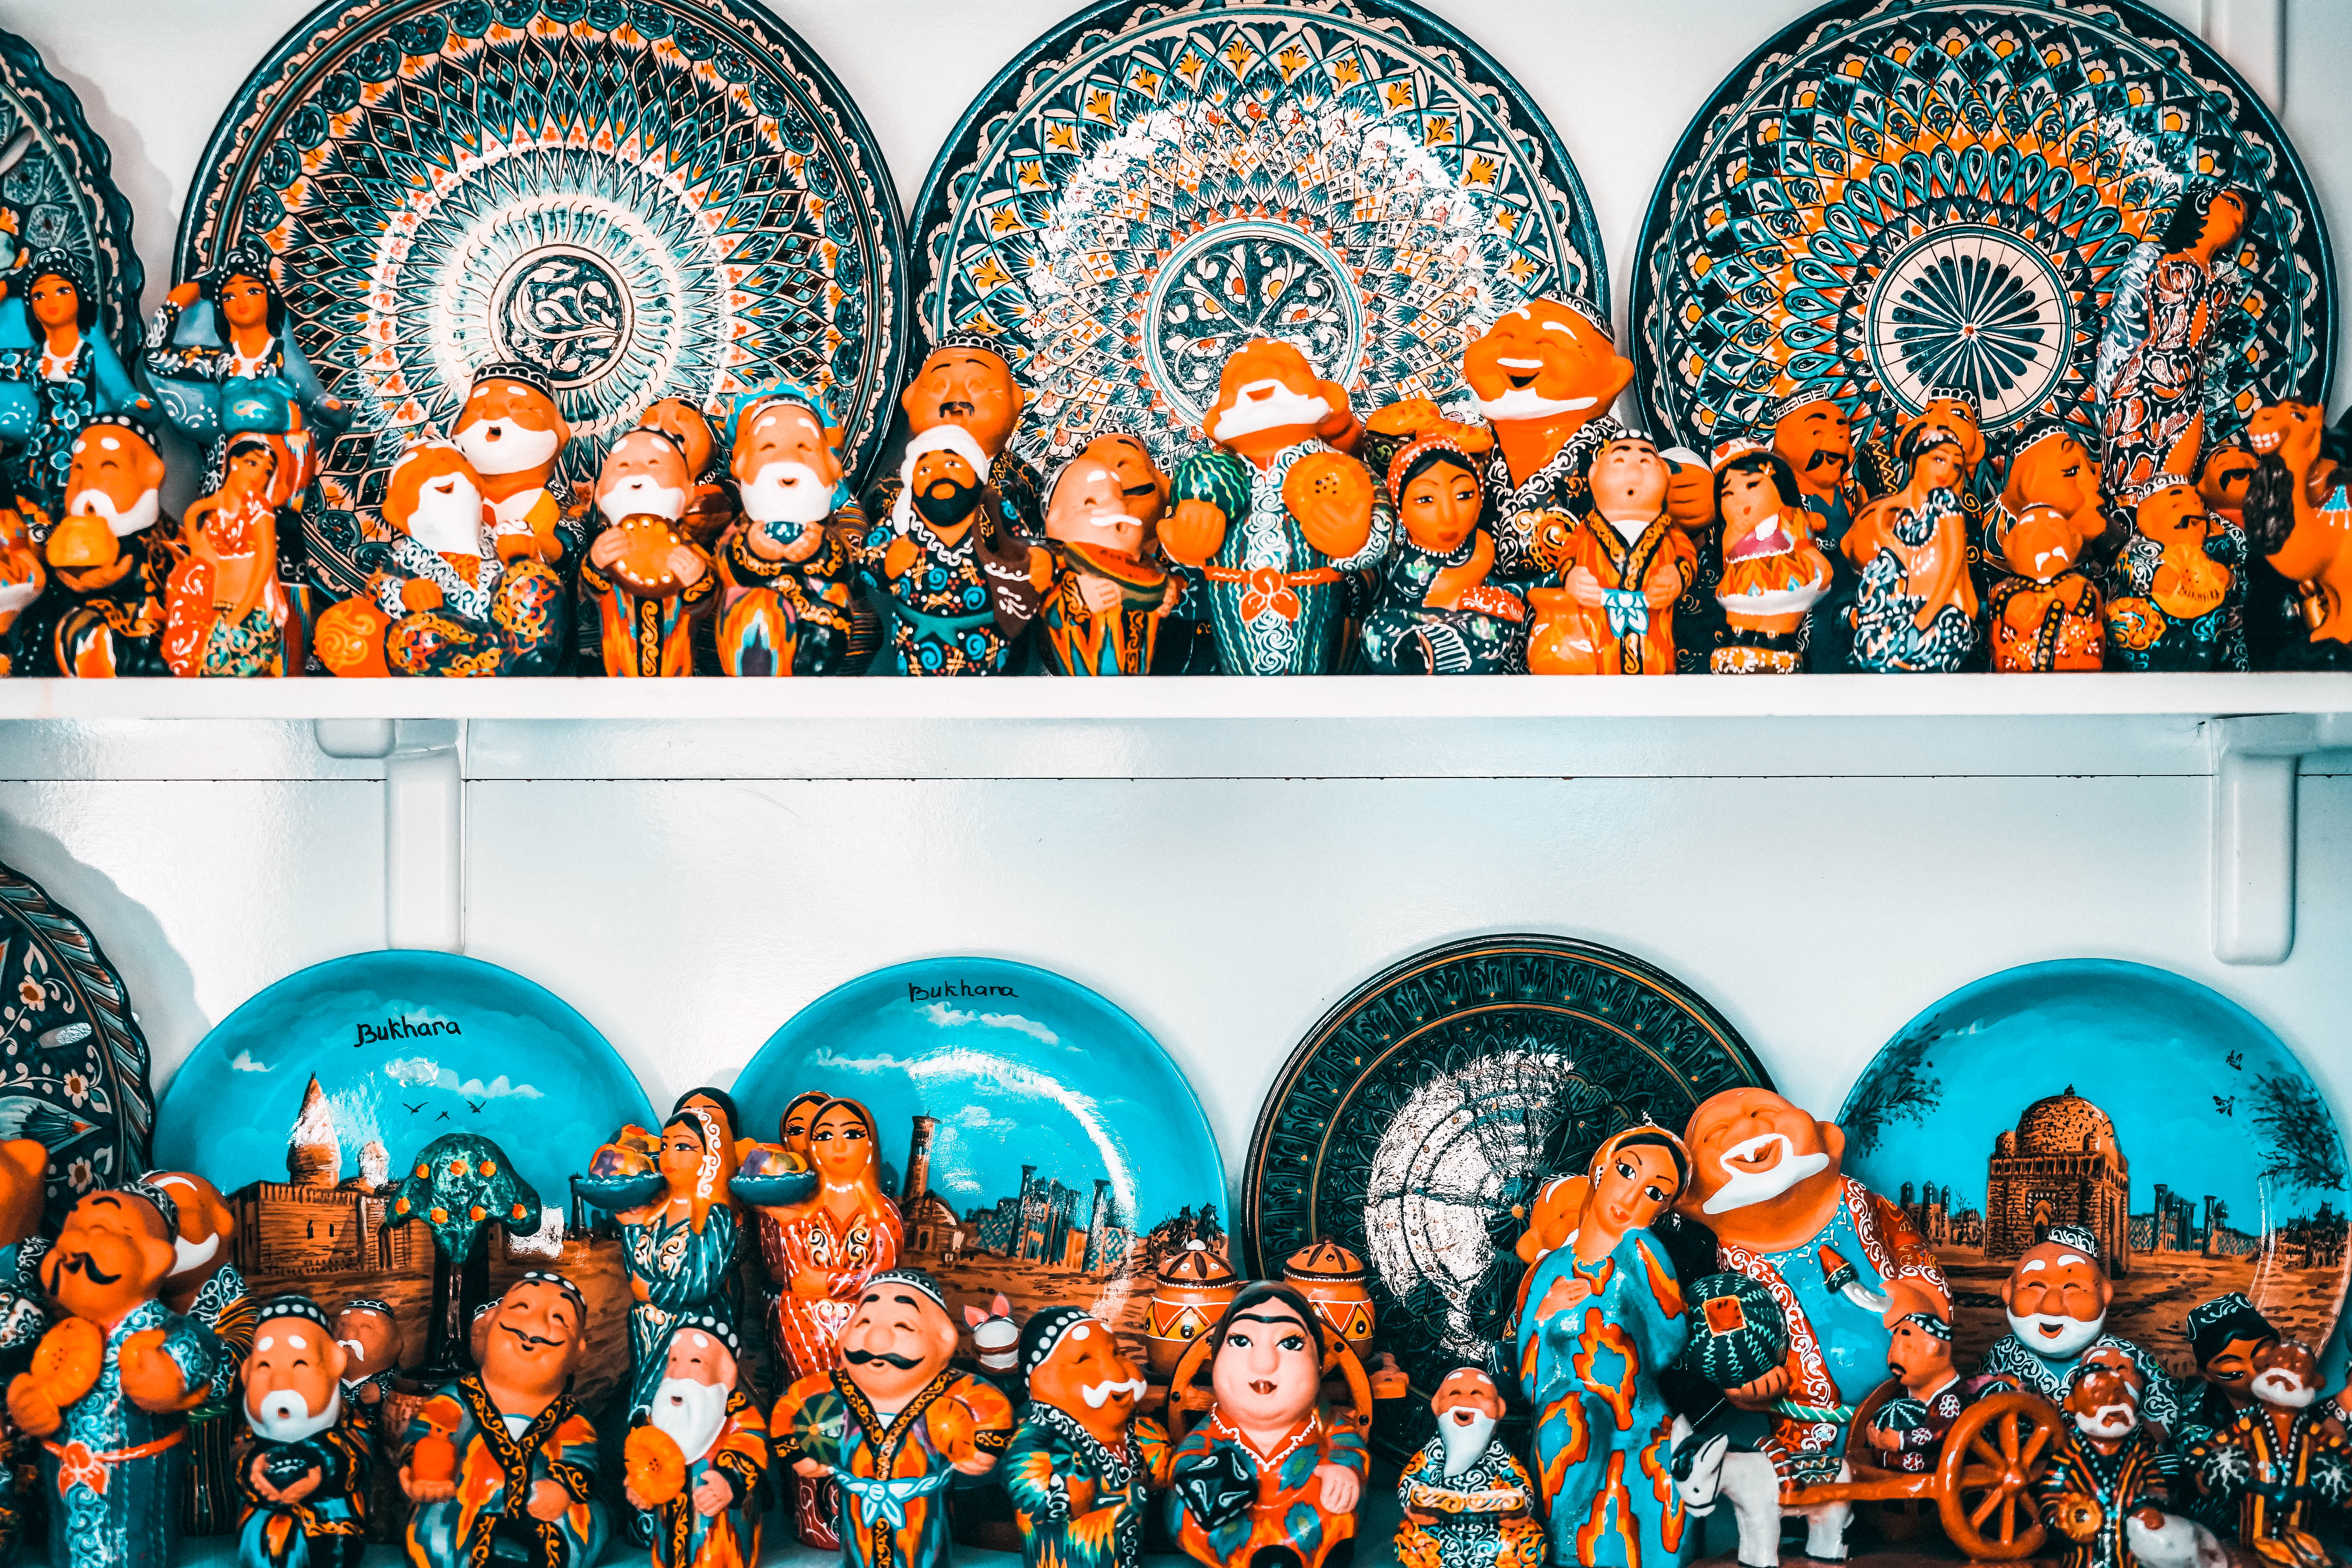 Central Asia souvenirs from festivals